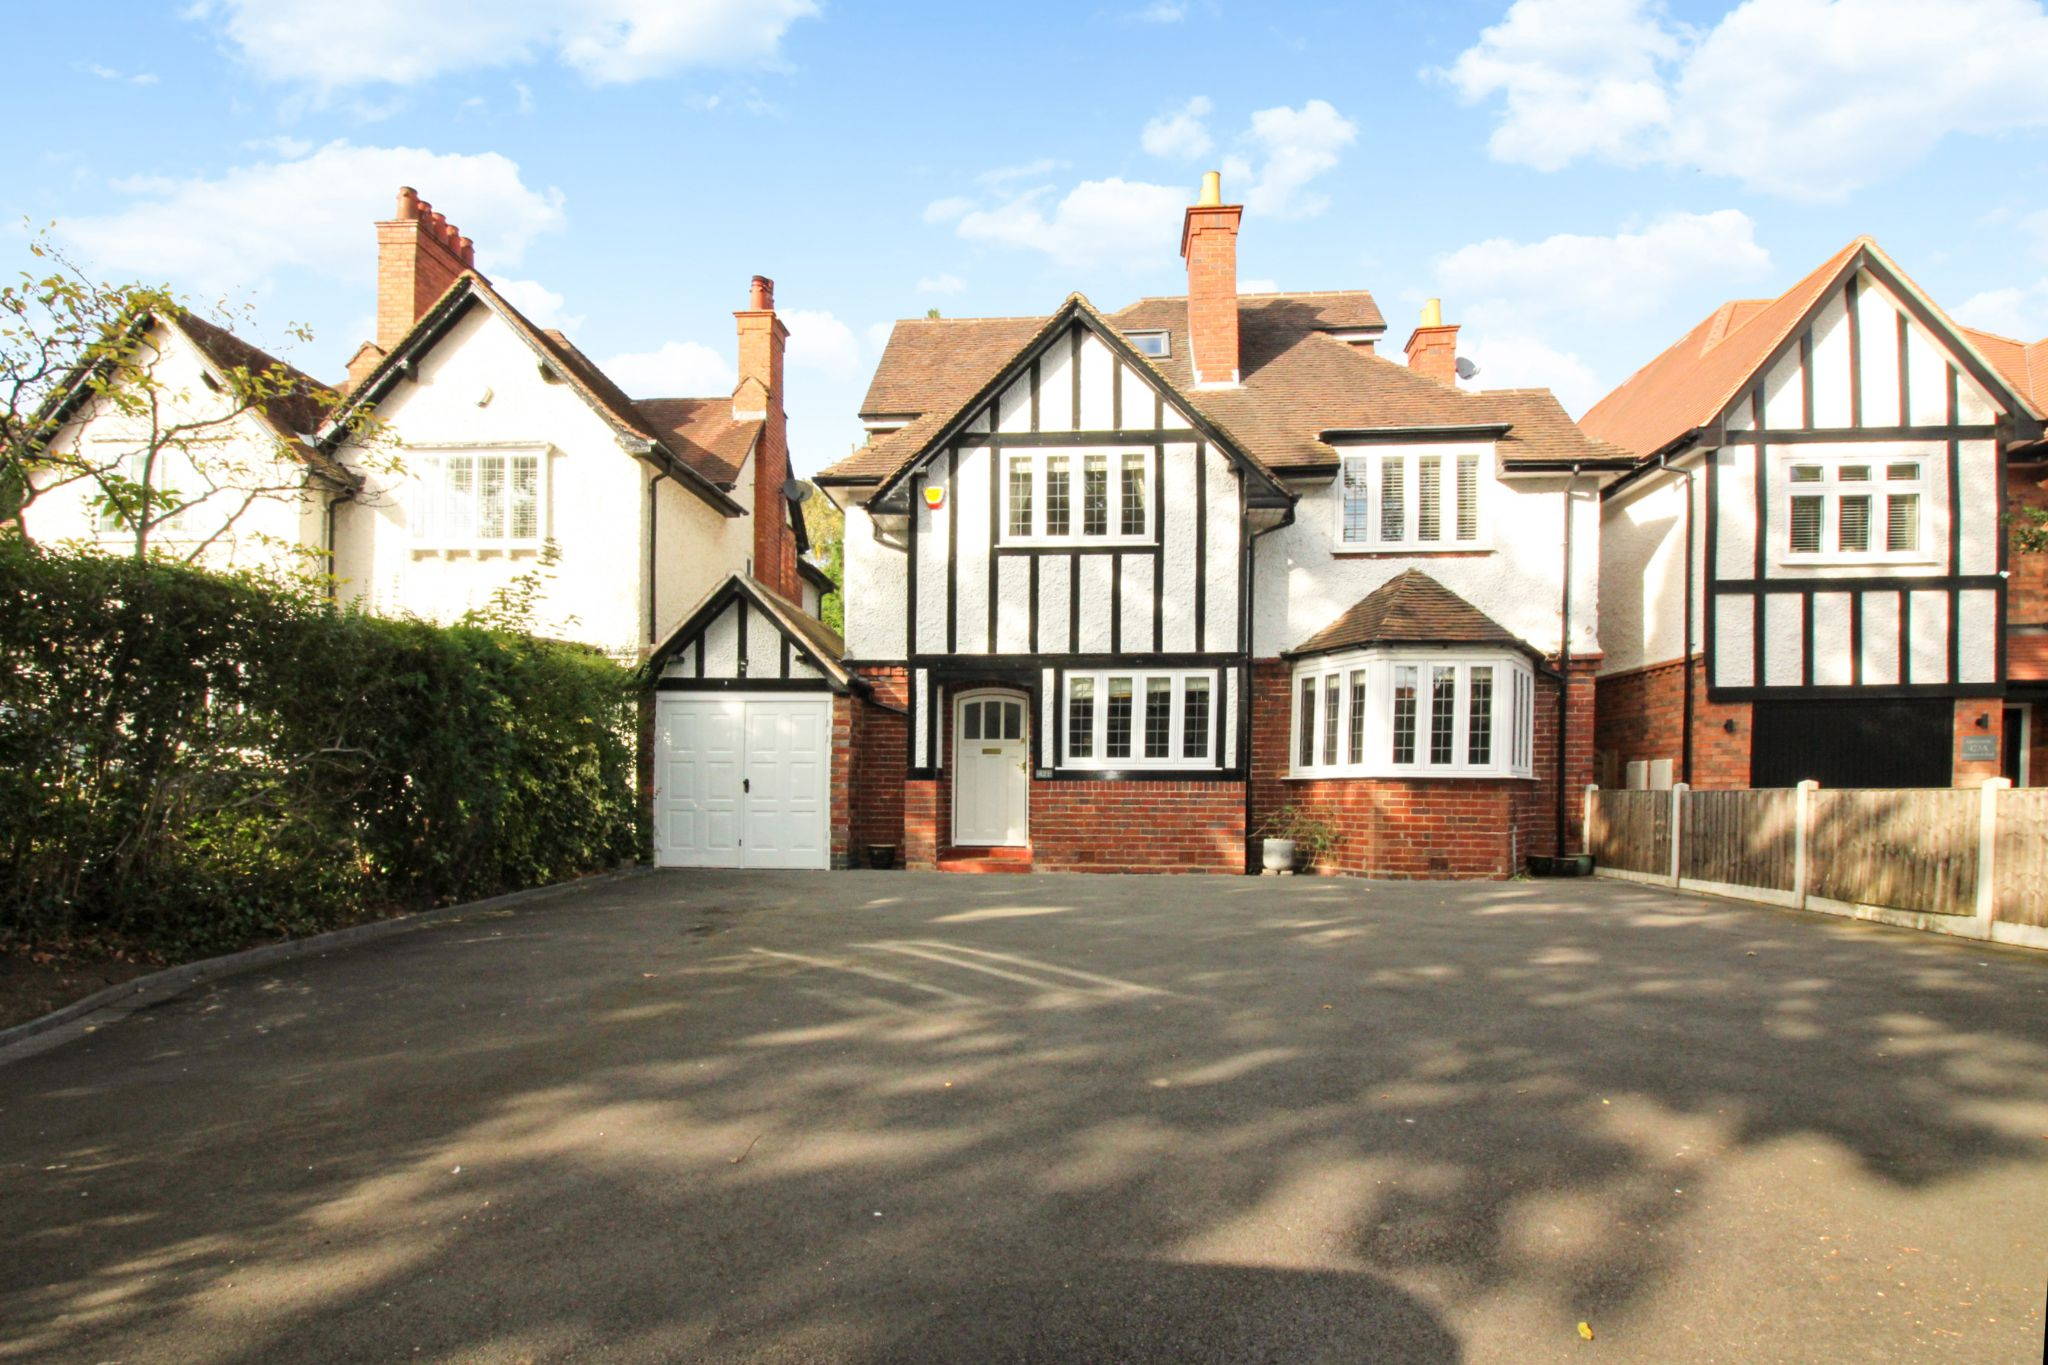 5 bedroom detached house For Sale in Solihull - Photograph 1.